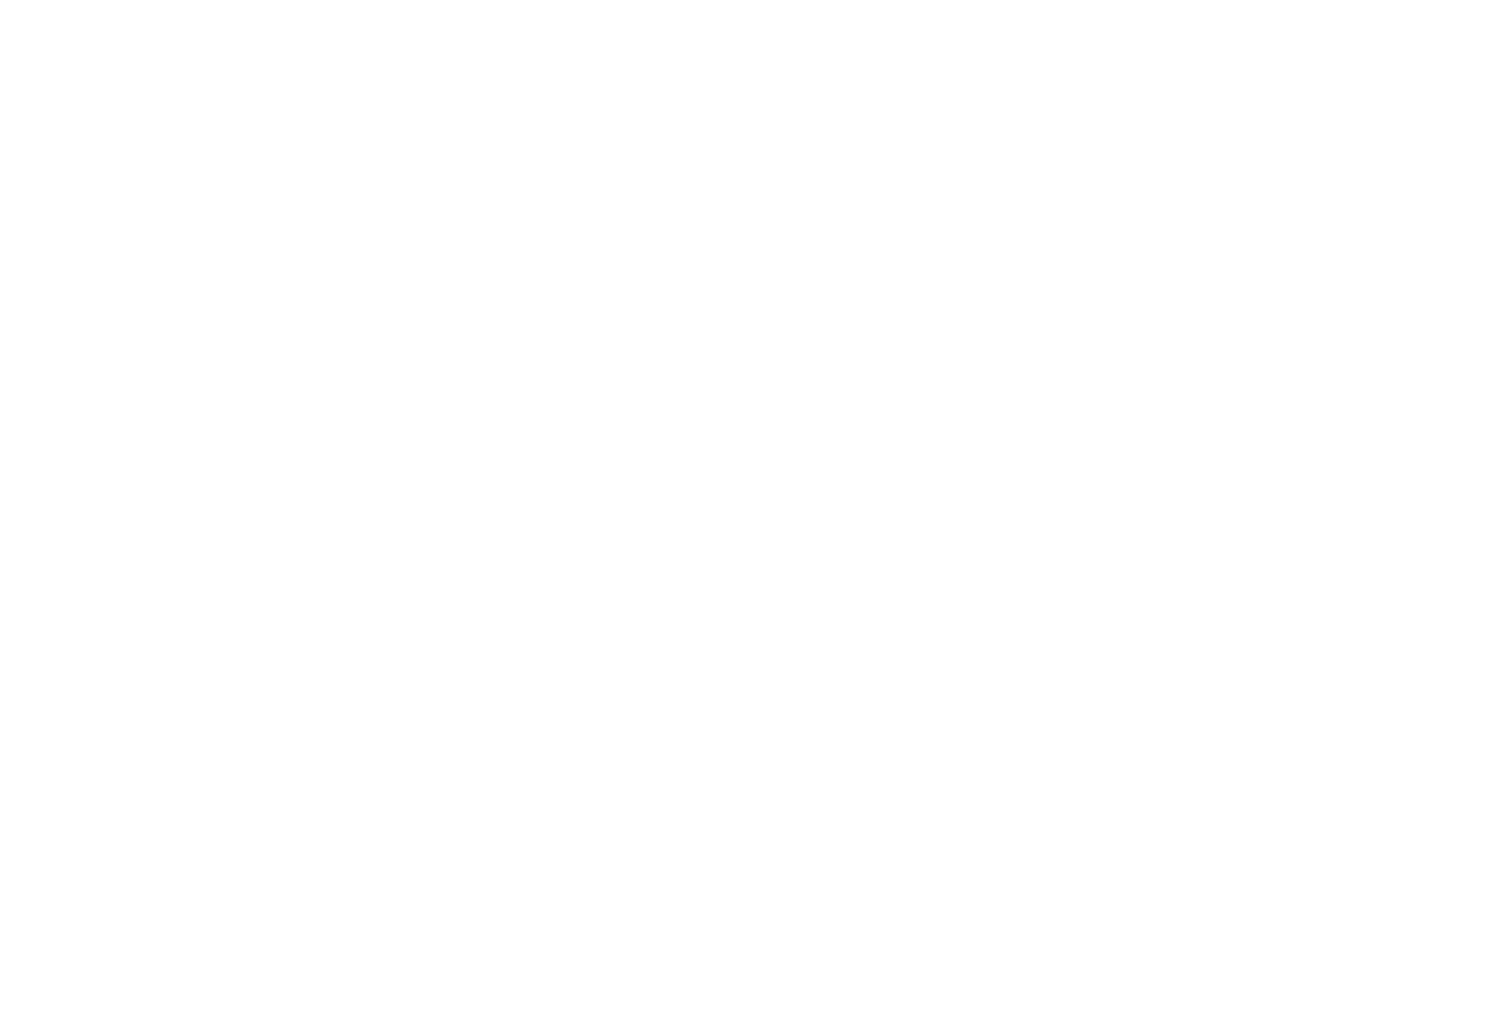 Ideal Frame Work